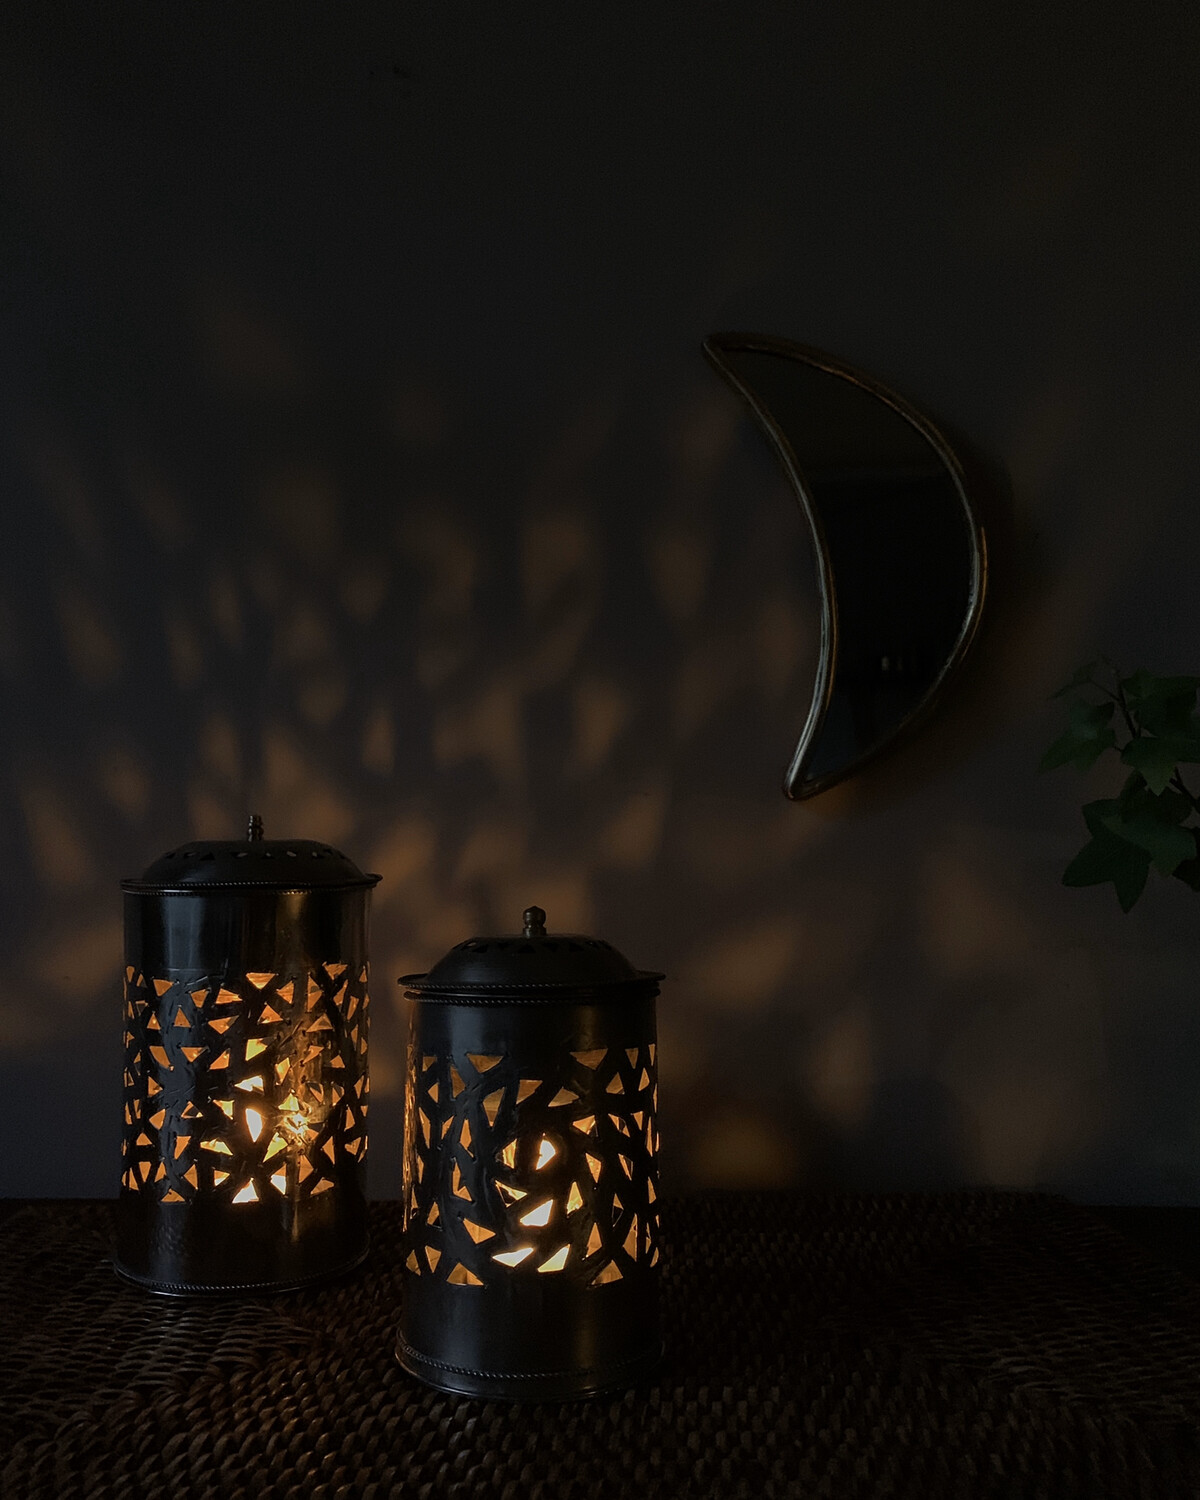 From Morocco / Morrocan Aroma Diffuser PT